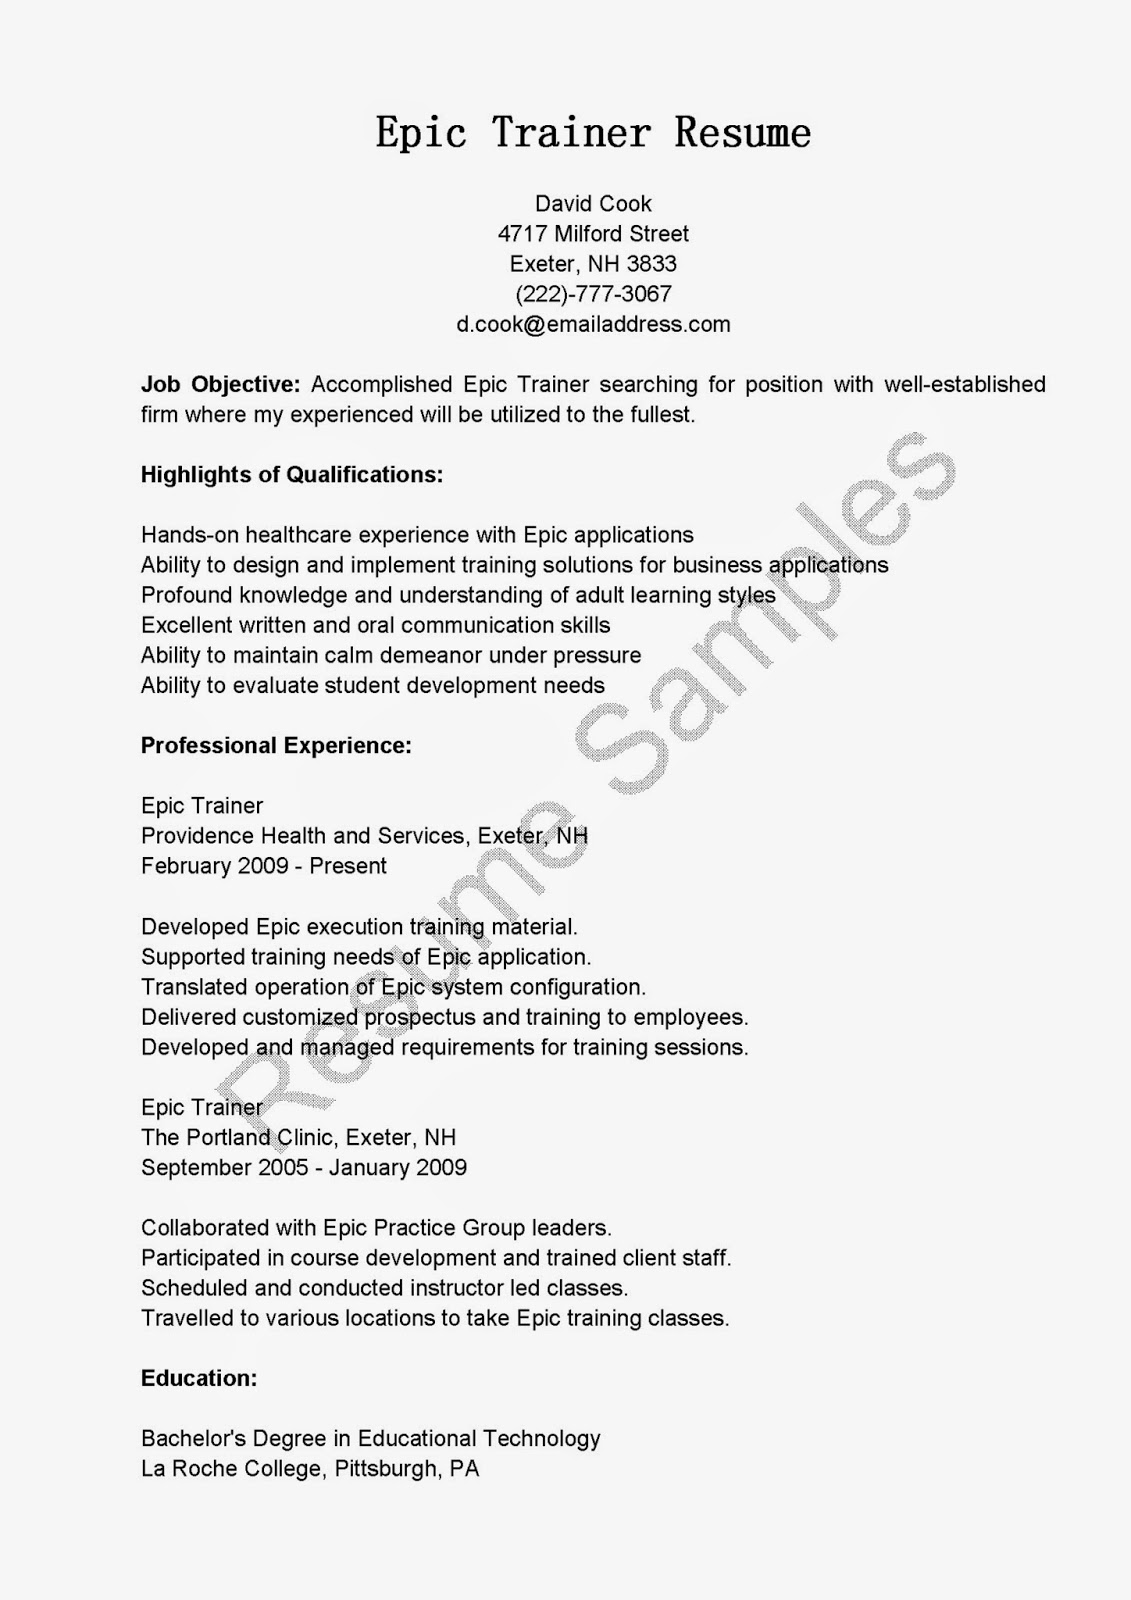 Resume Samples Epic Trainer Resume Sample